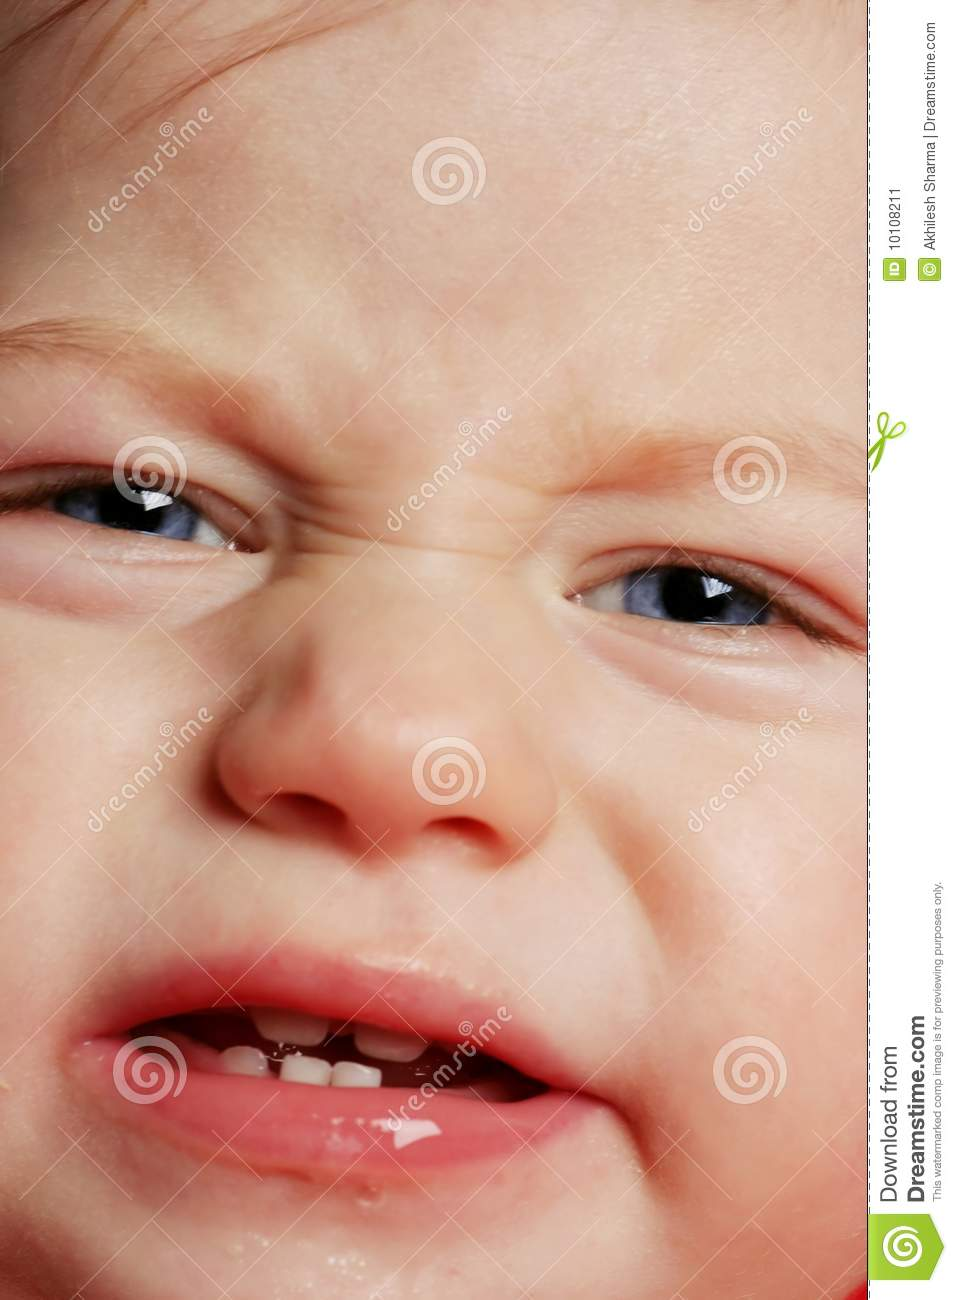 Face Closeup Of A Crying Baby Stock Image - Image: 10108211